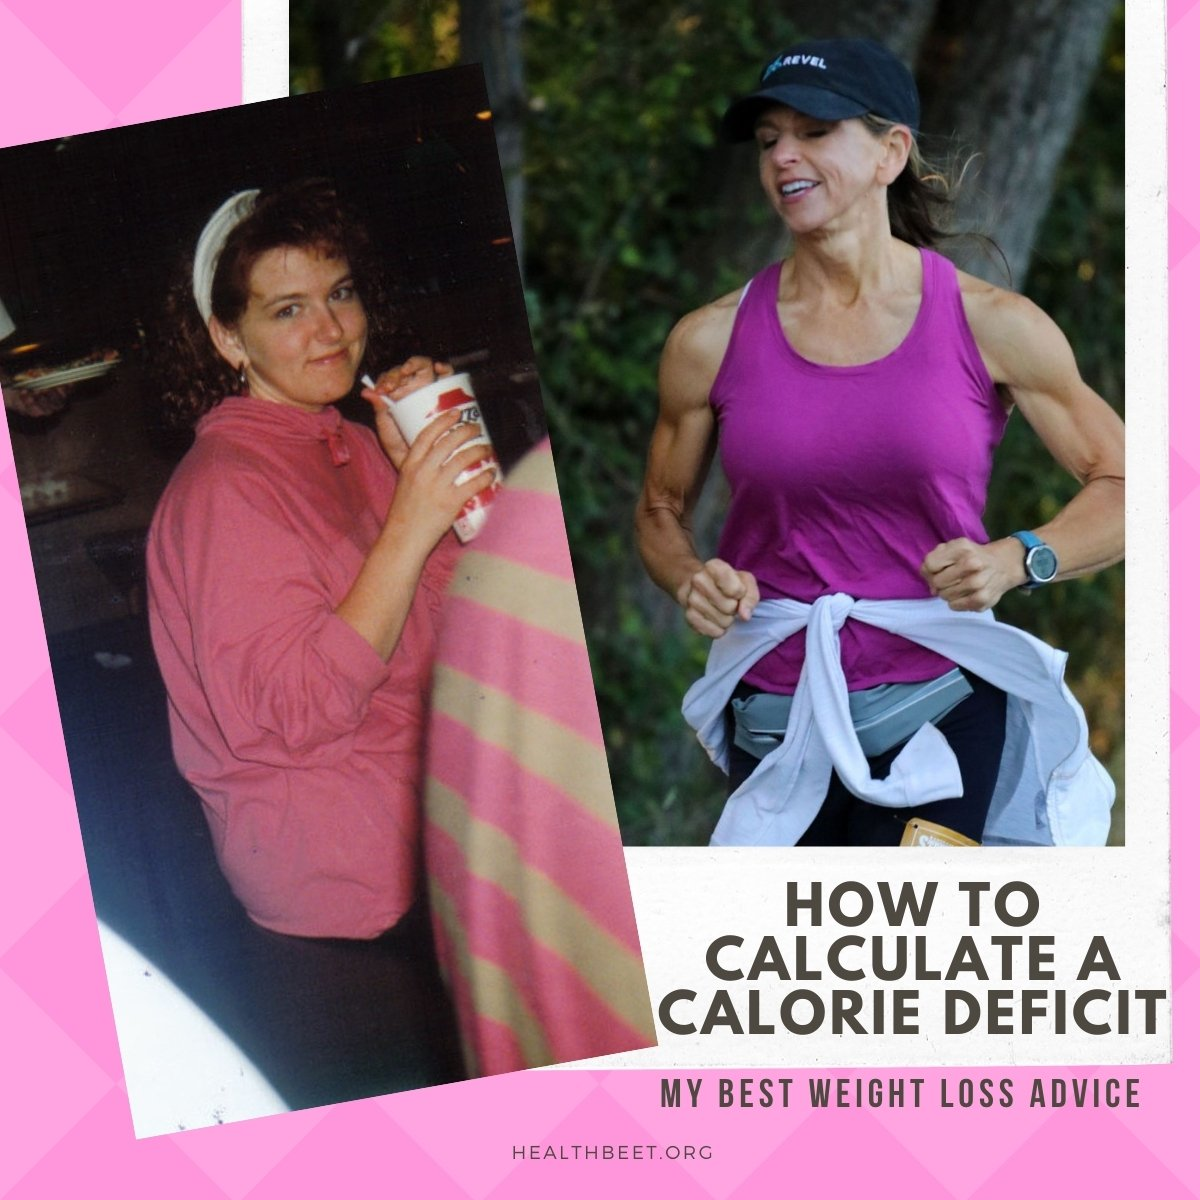 How to Calculate a Calorie Deficit